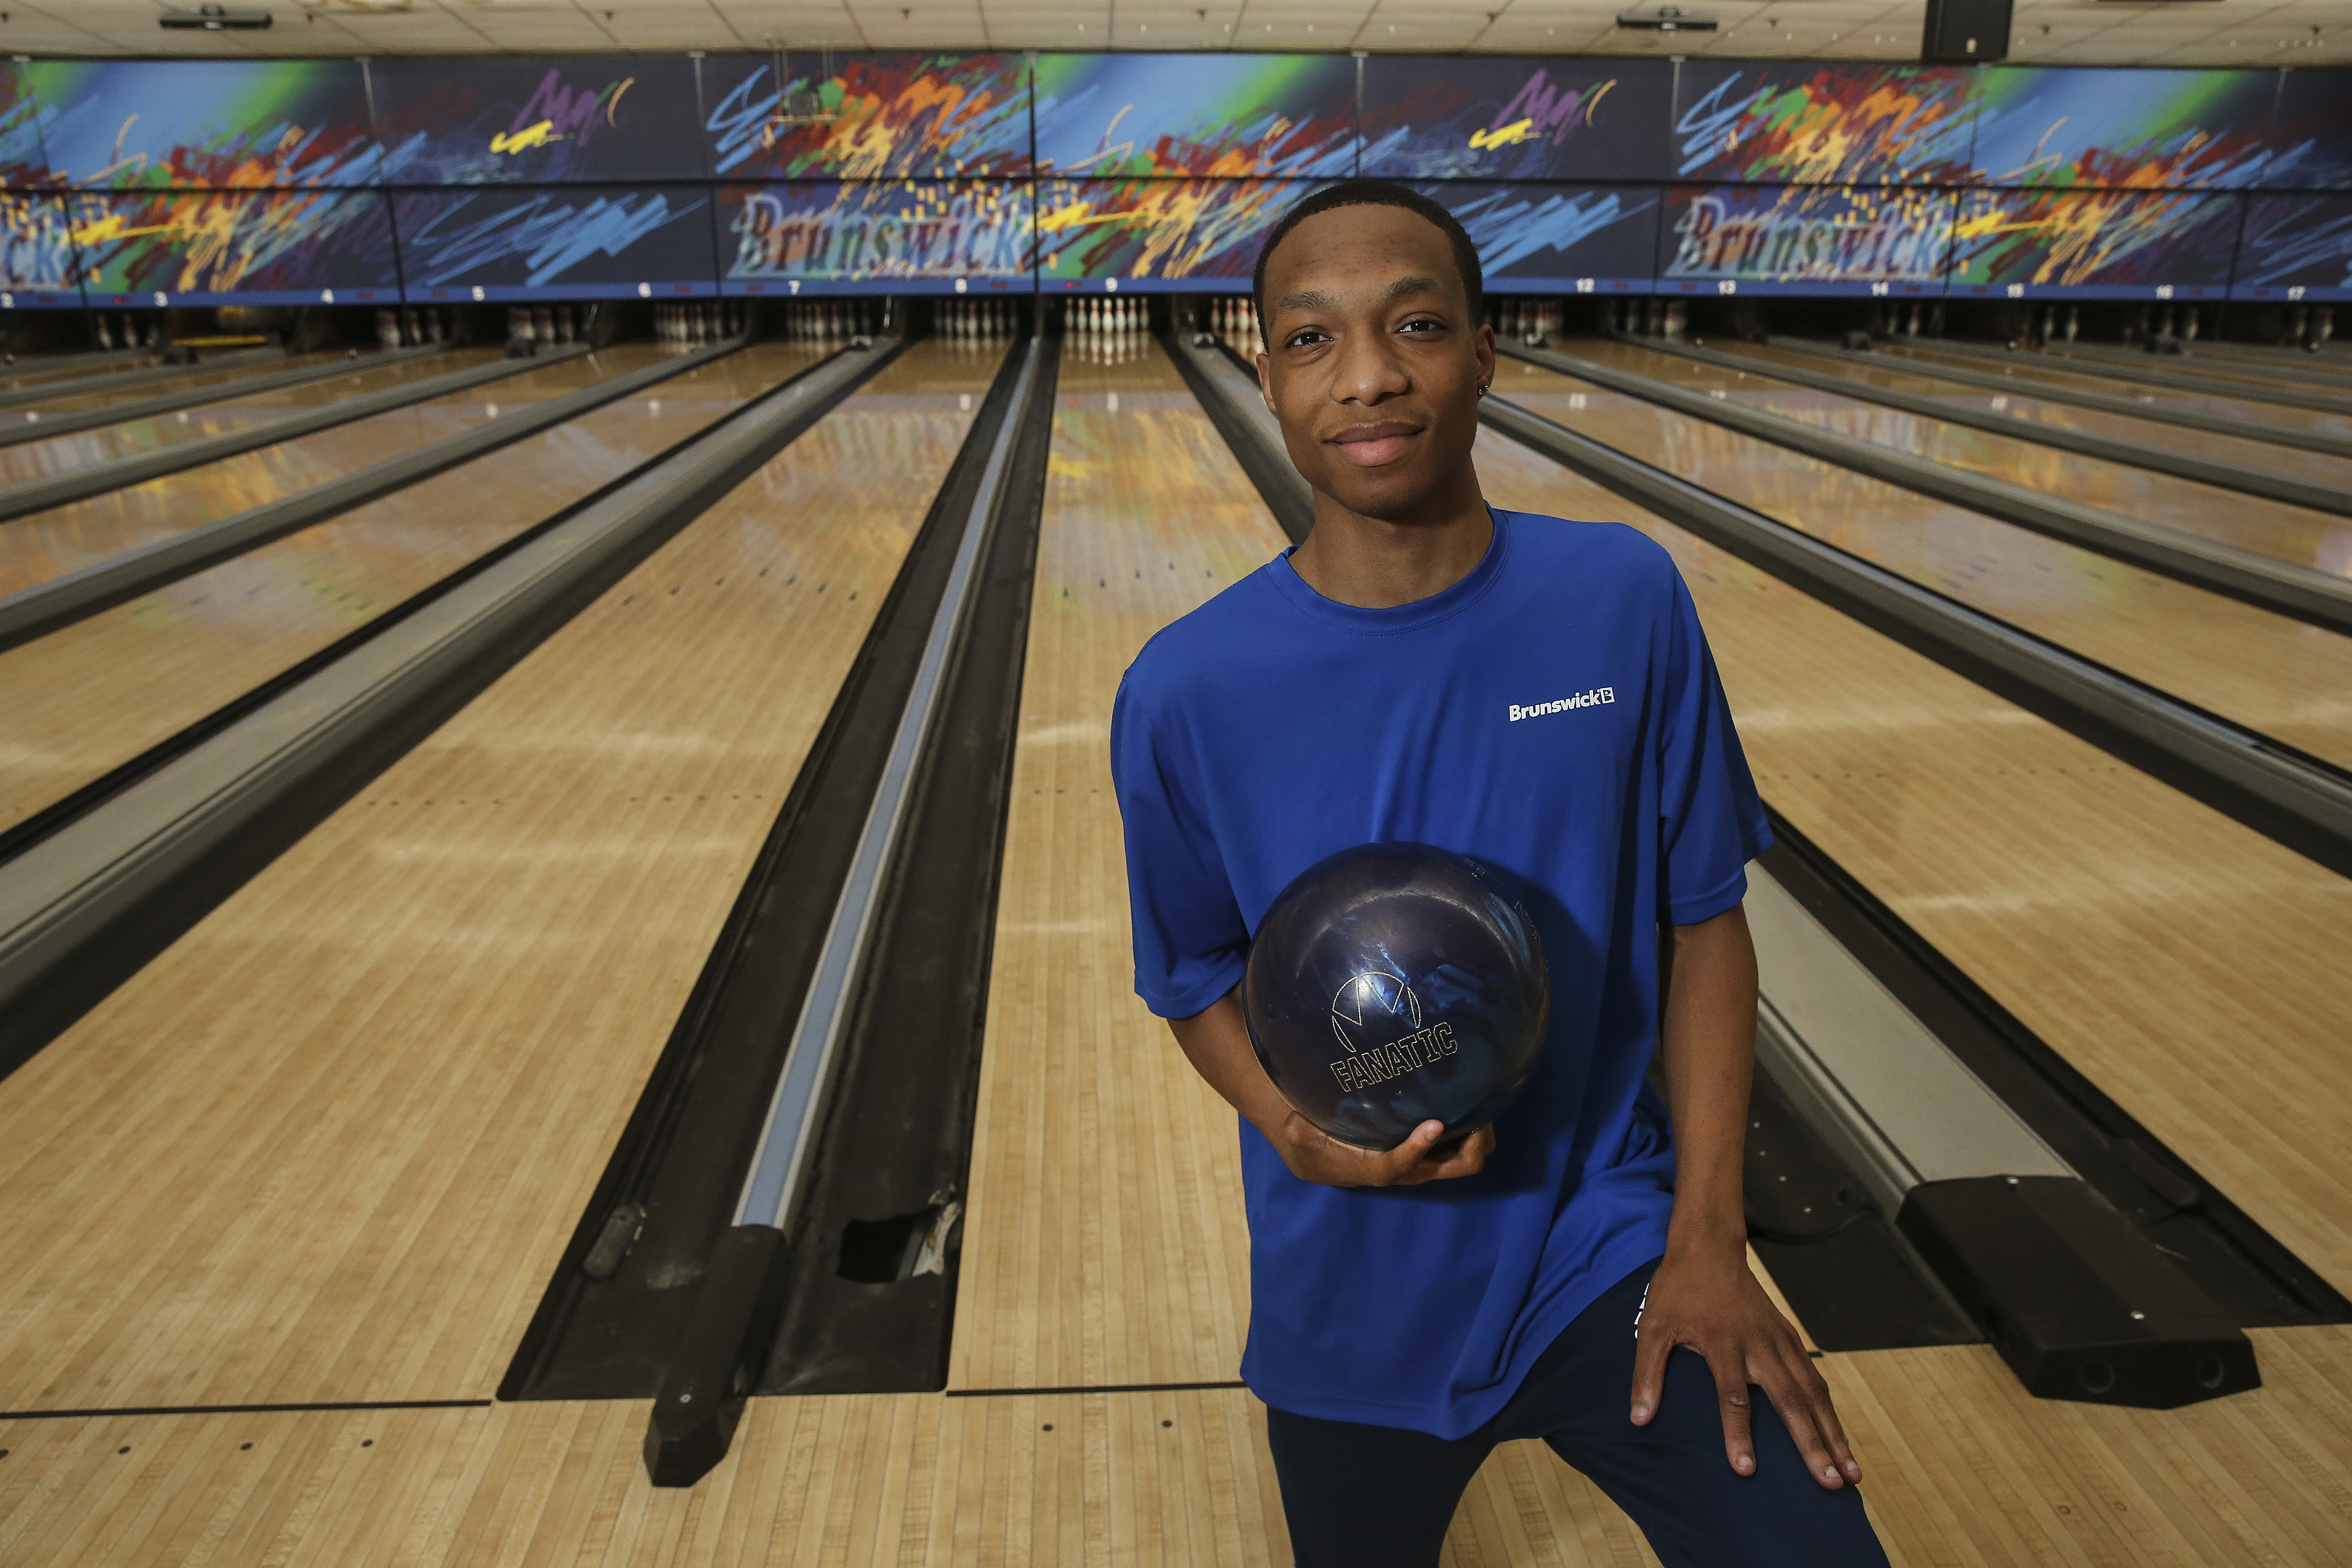 Christopher Johnson, a senior at Lankenau High School, is heading to a North Carolina college on a bowling scholarship that will cover his room and board all four years. At Erie Lanes, Wednesday May 30, 2018